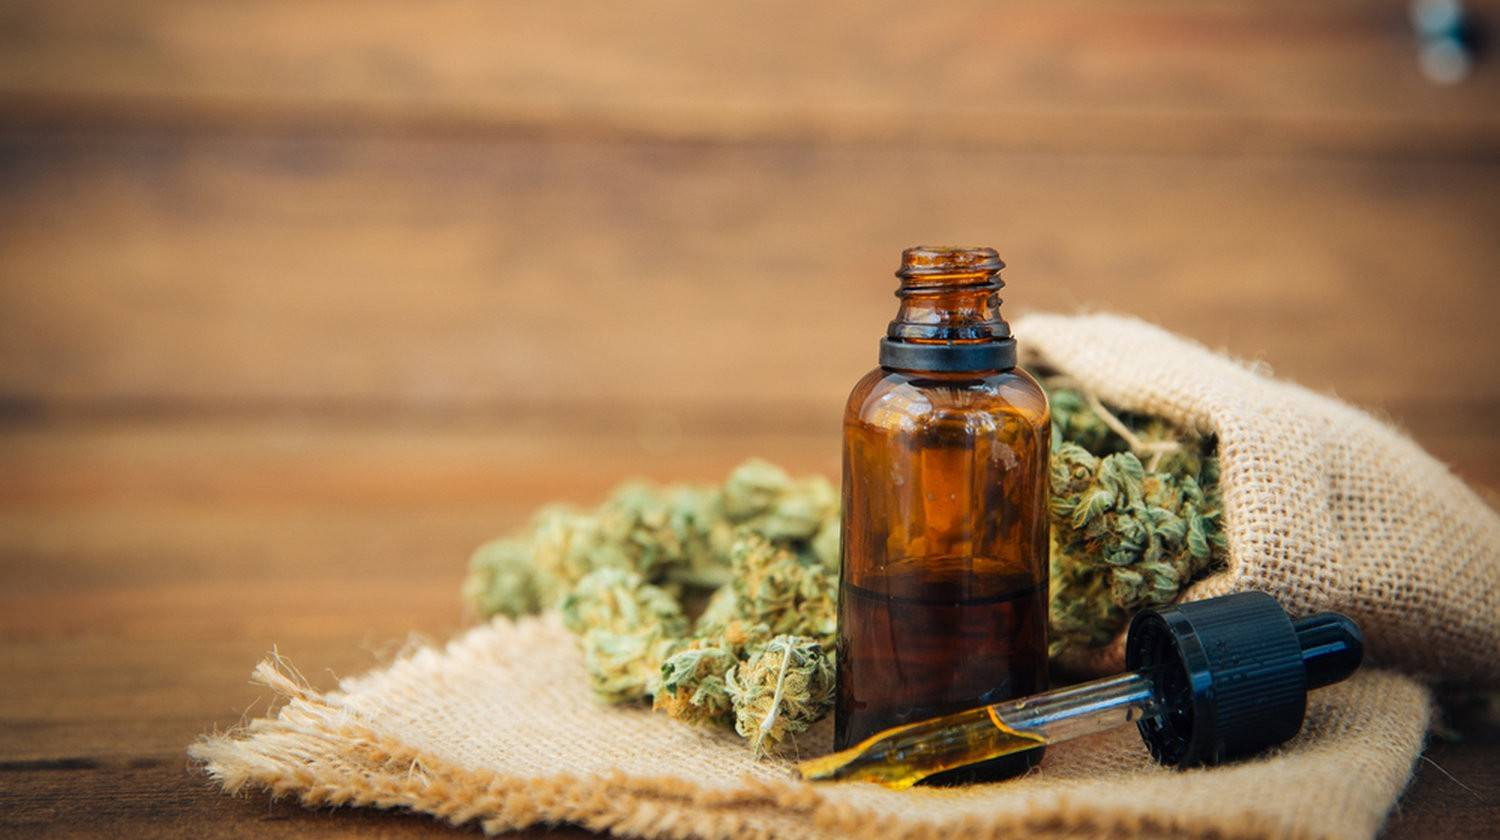 Featured | Essential oil made from medicinal cannabis | Reduce Pain & Inflammation with CBD Oil